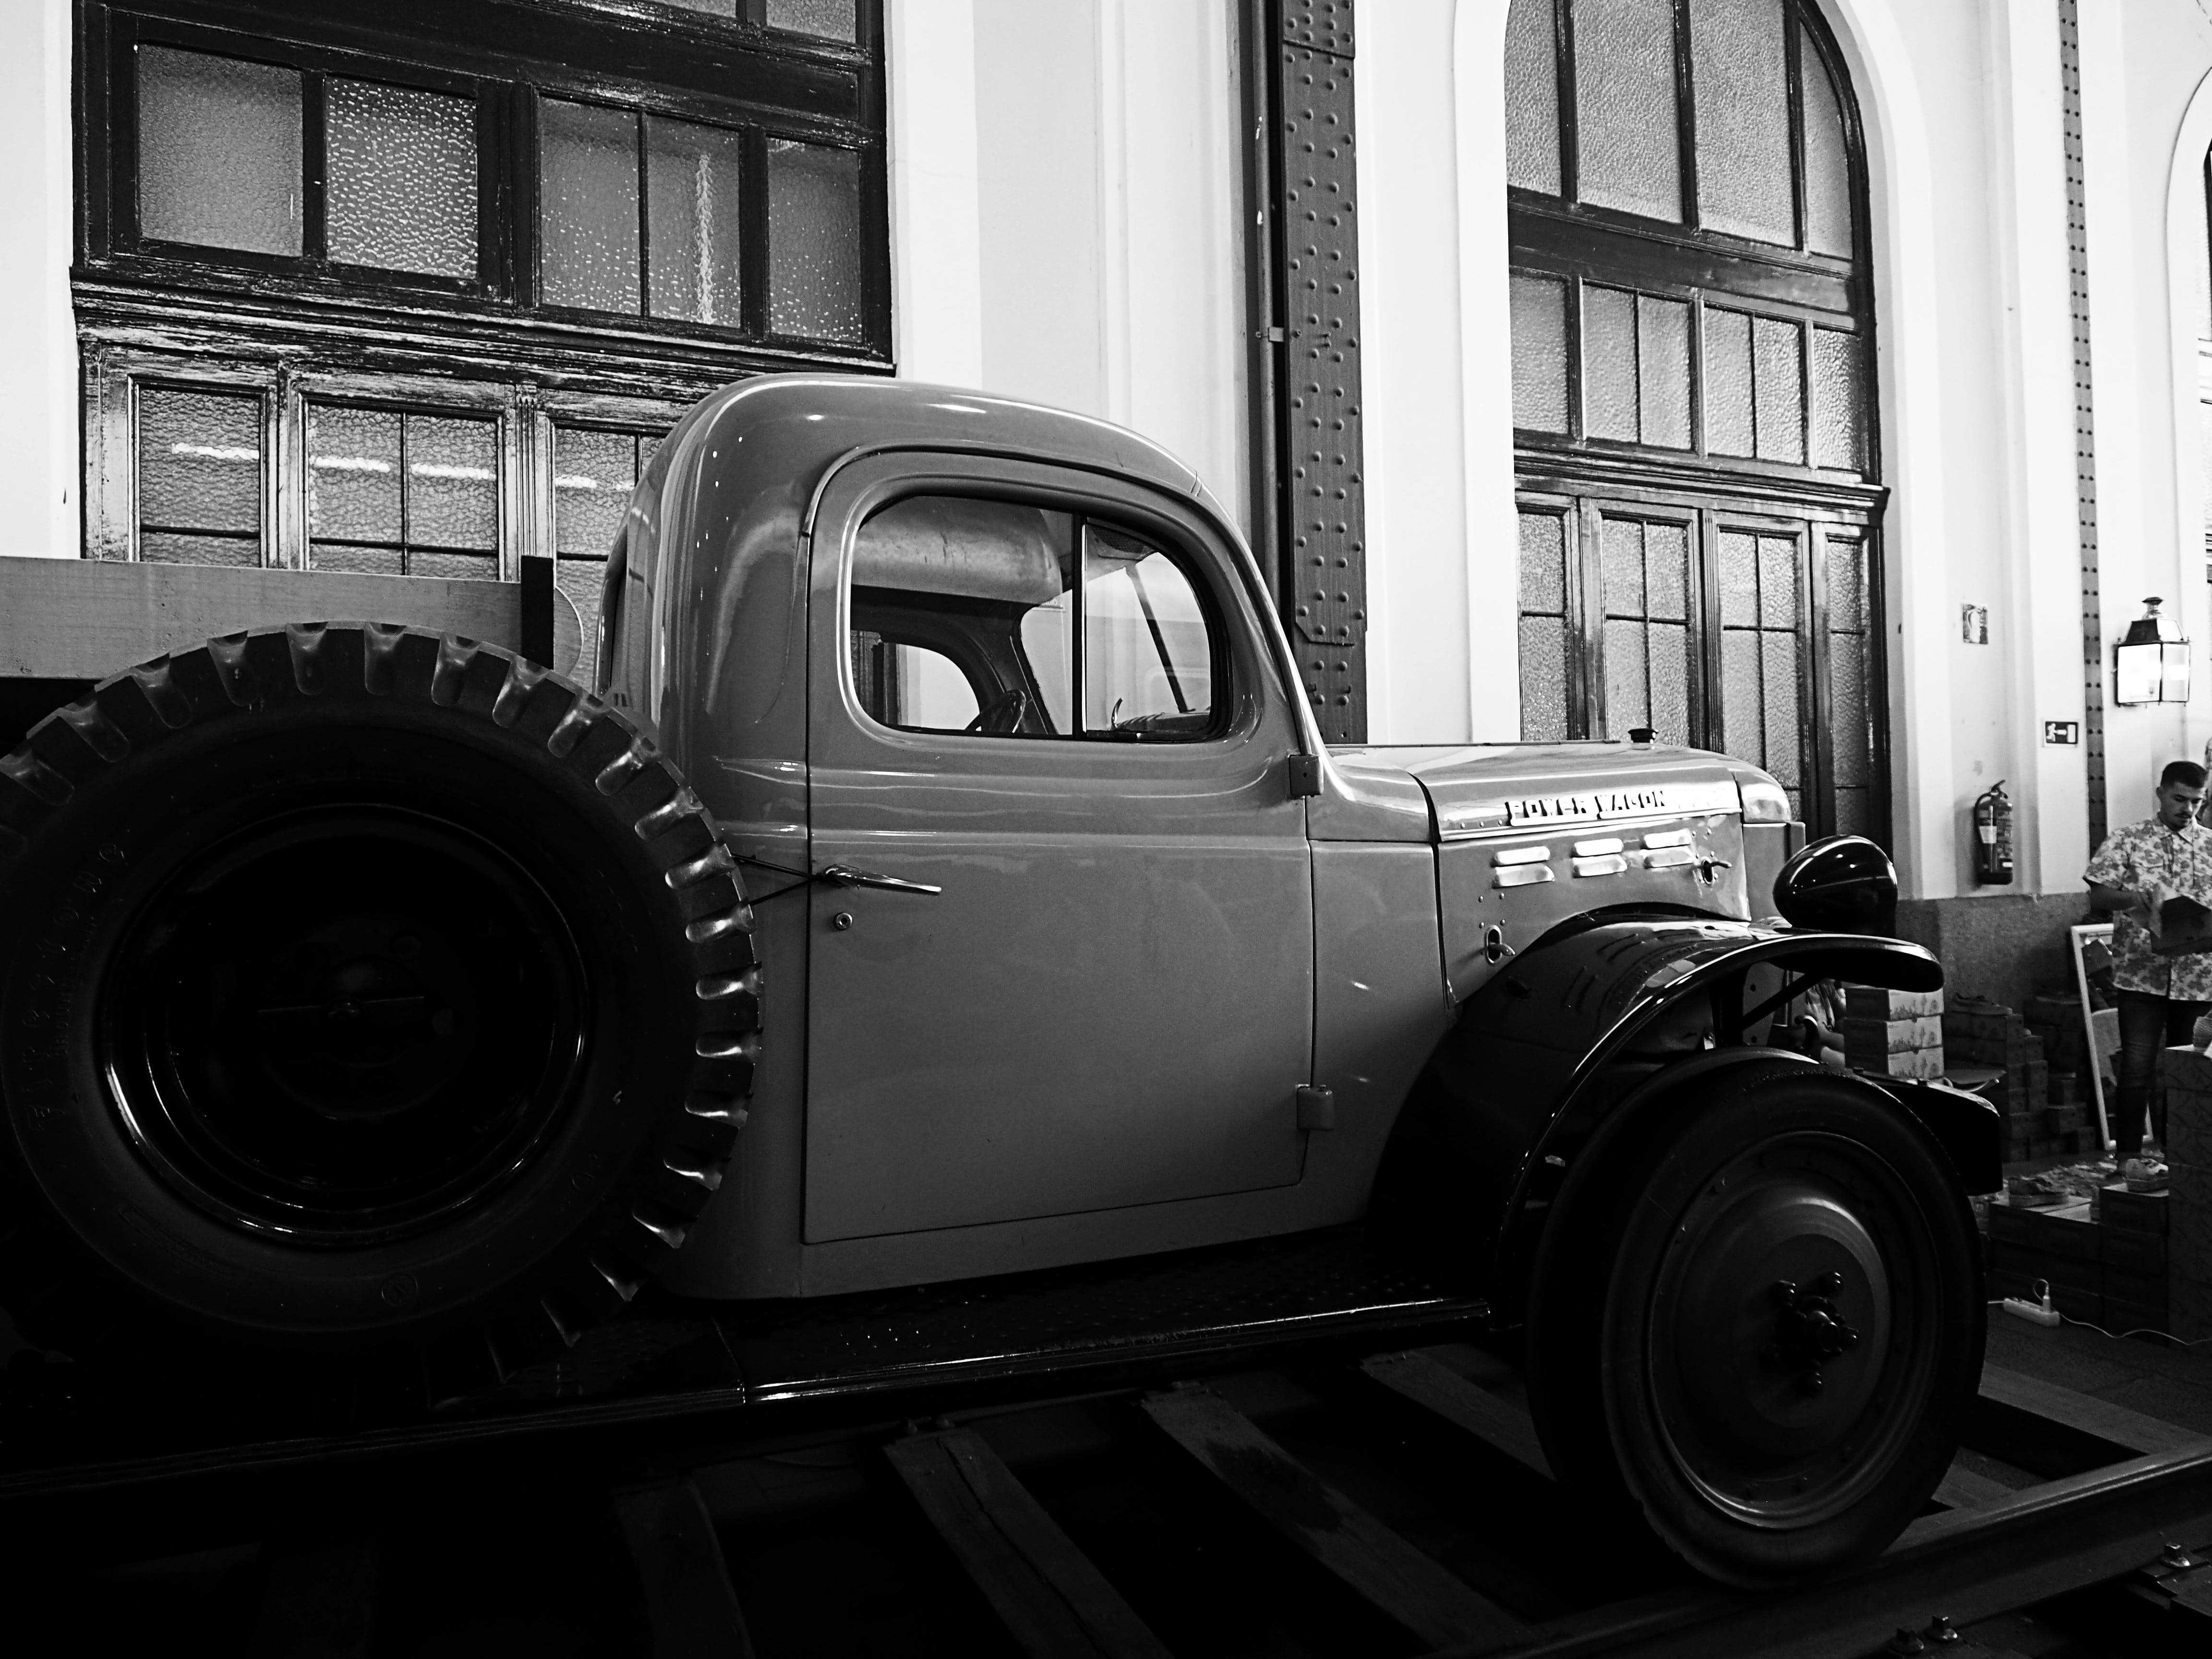 Vintage Pickup Truck in Greyscale Photography